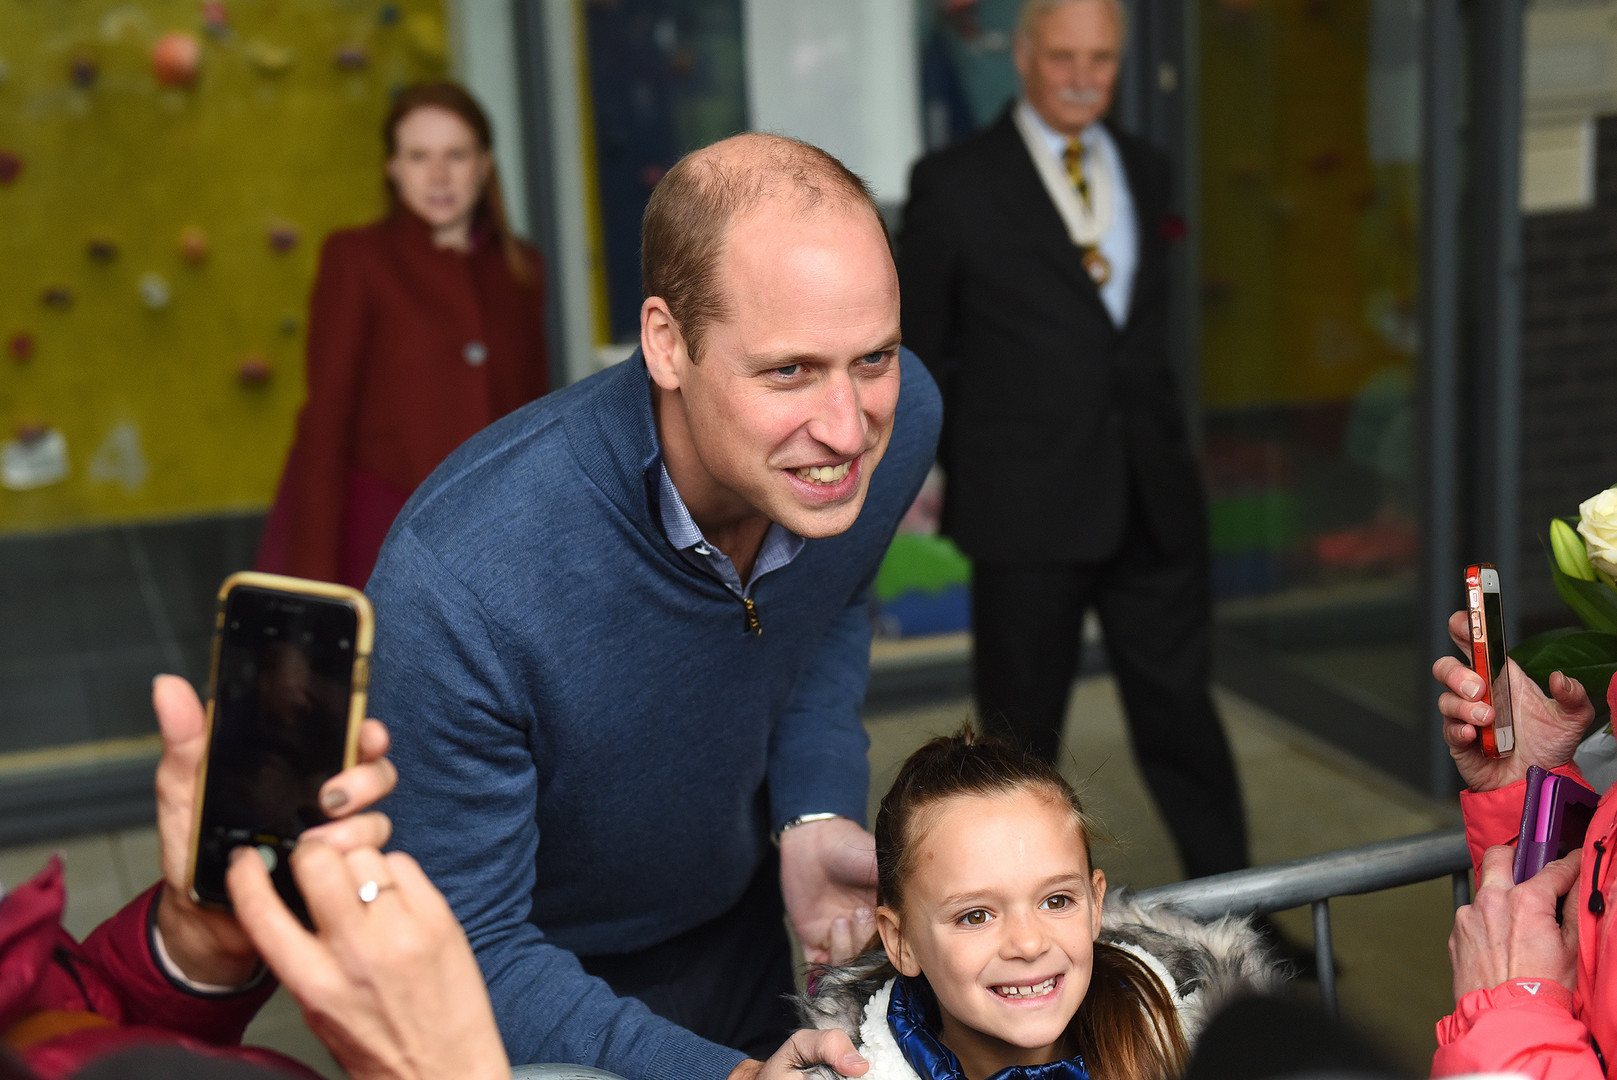 The Duke of Cambridge visiting a leisure centre for Sport England